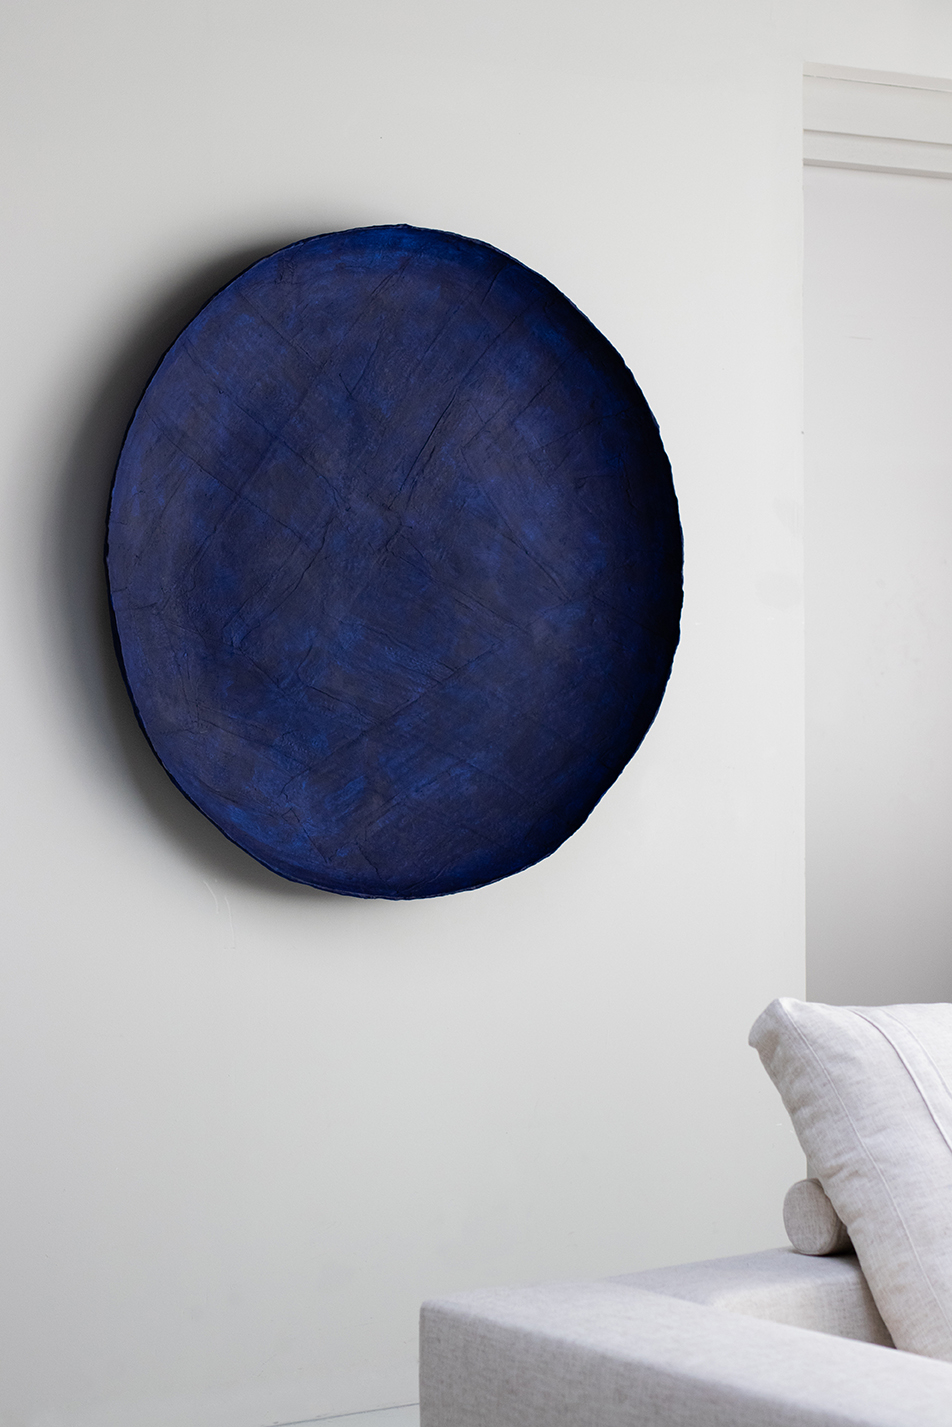 Art Bowl - night Blue by July Adrichem